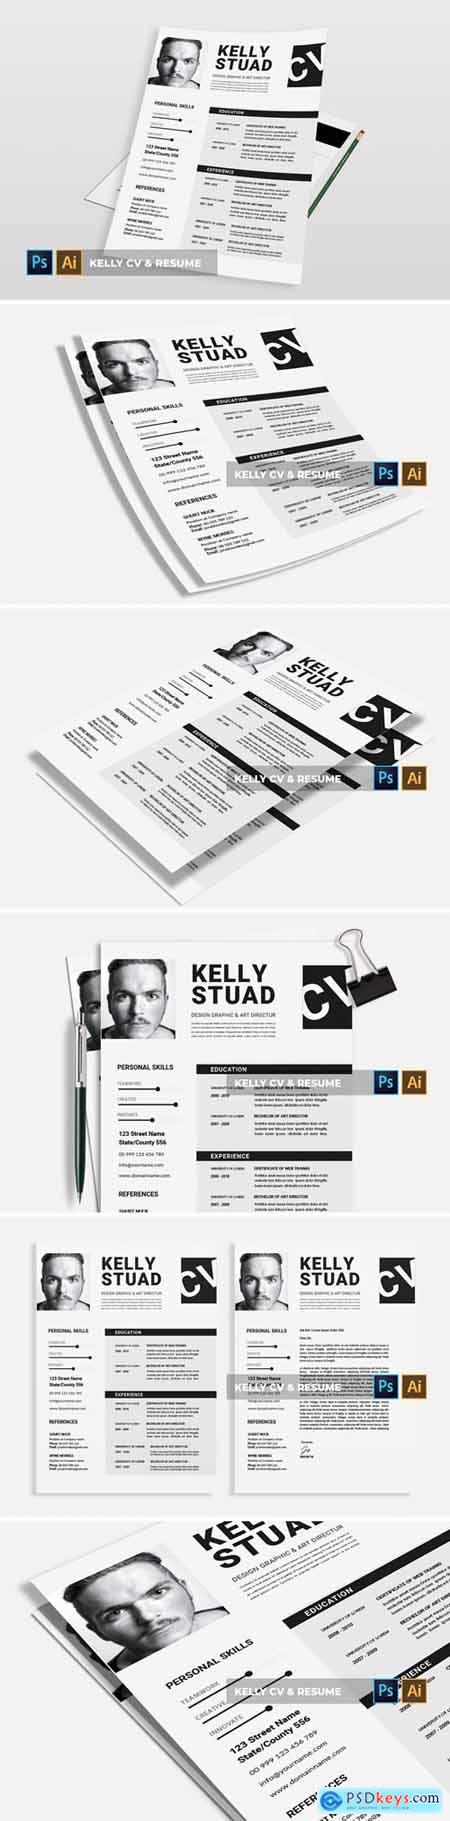 Kelly - CV & Resume